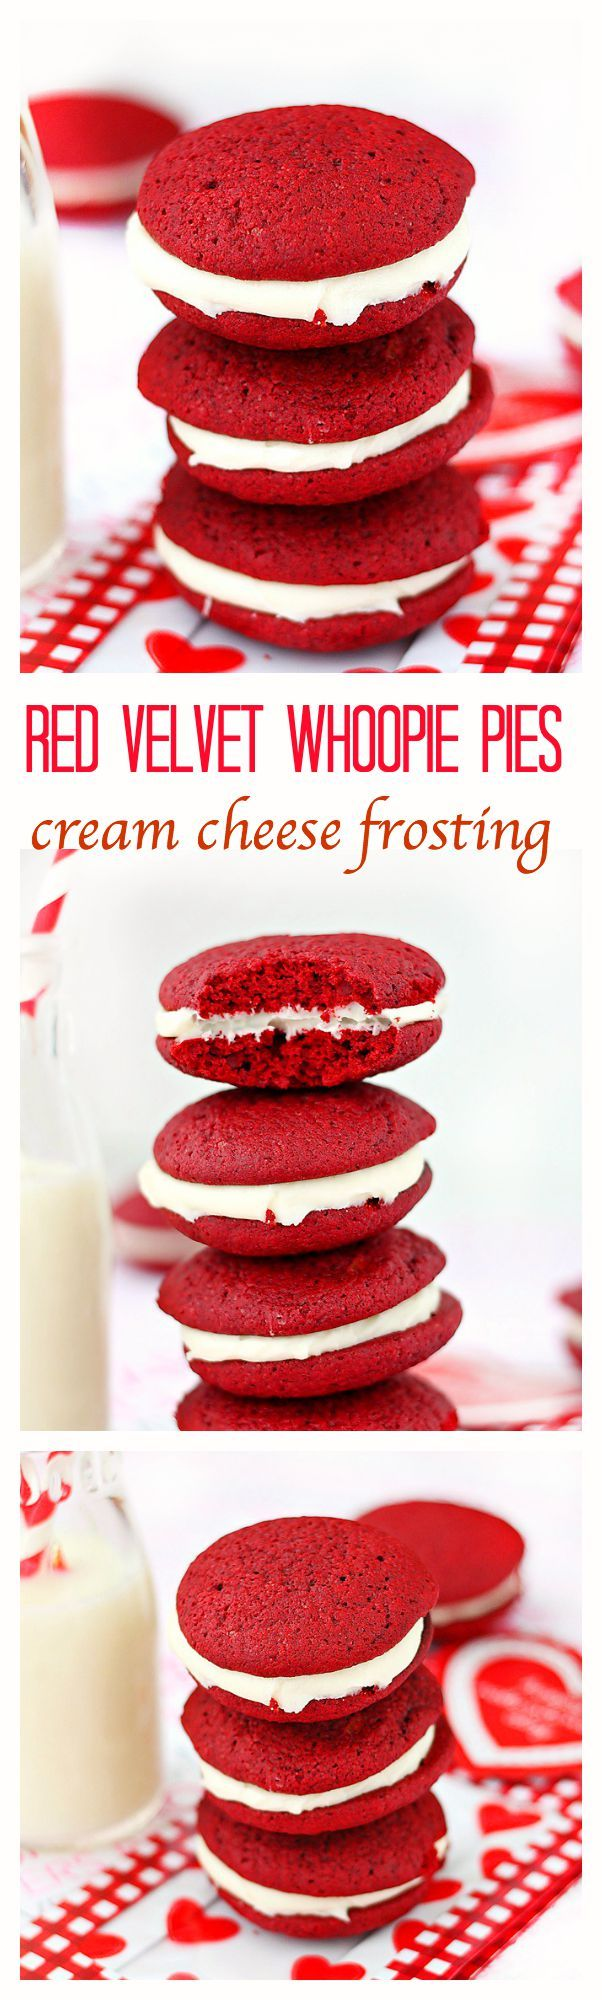 Red velvet whoopie pies with cream cheese frosting – Soft, cake-like red velvet cookies sandwiched with a smooth sweet cream cheese frosting